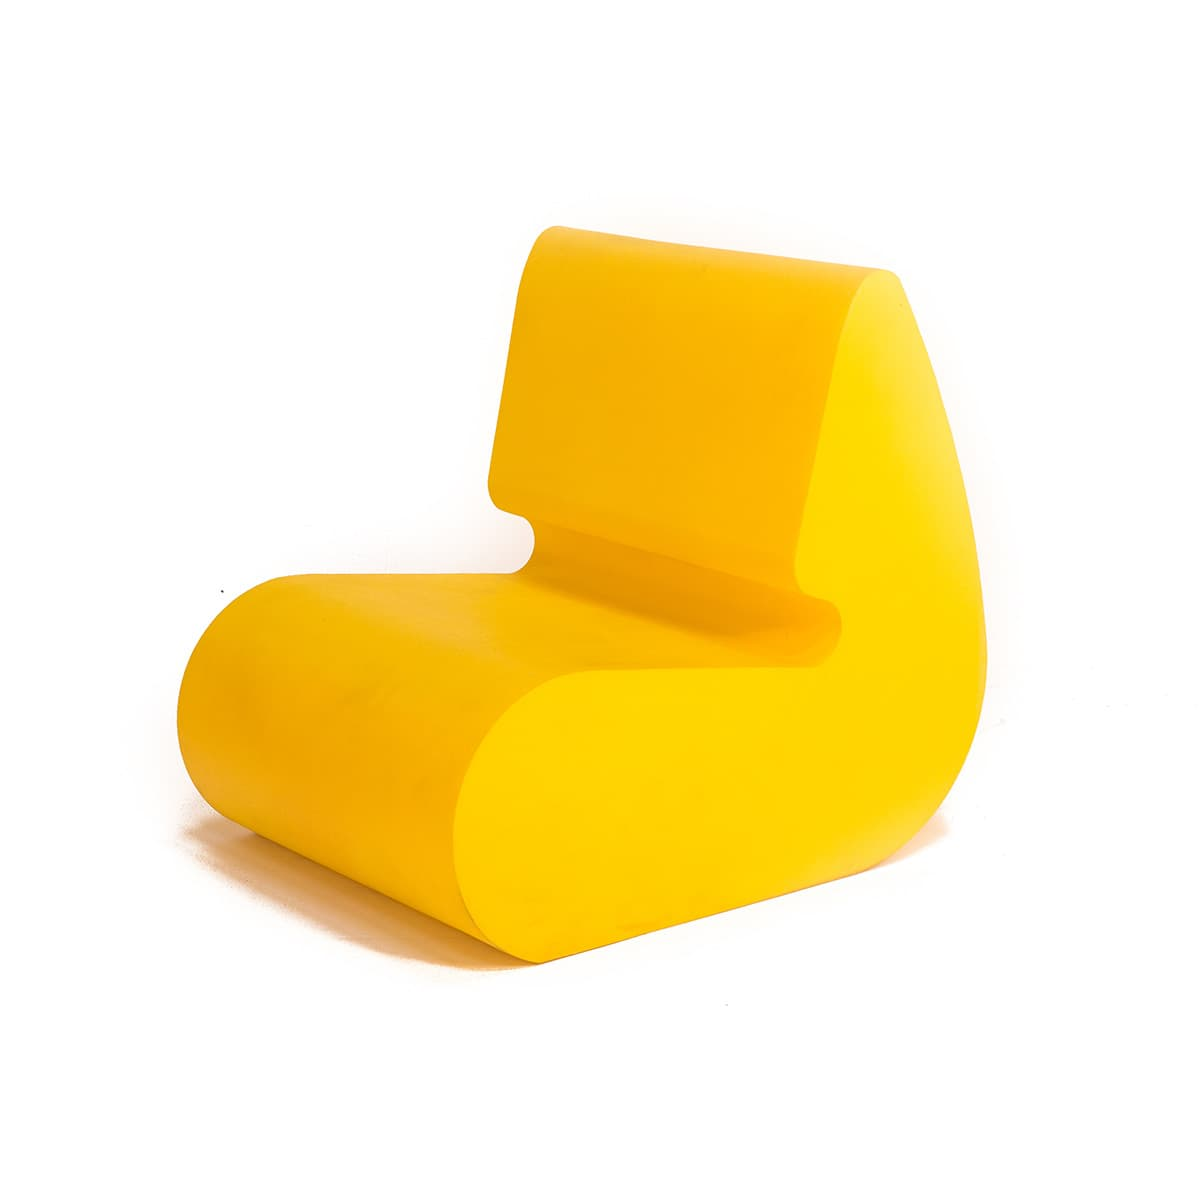 _0006_Block_Lounge-chair_yellow__isolated